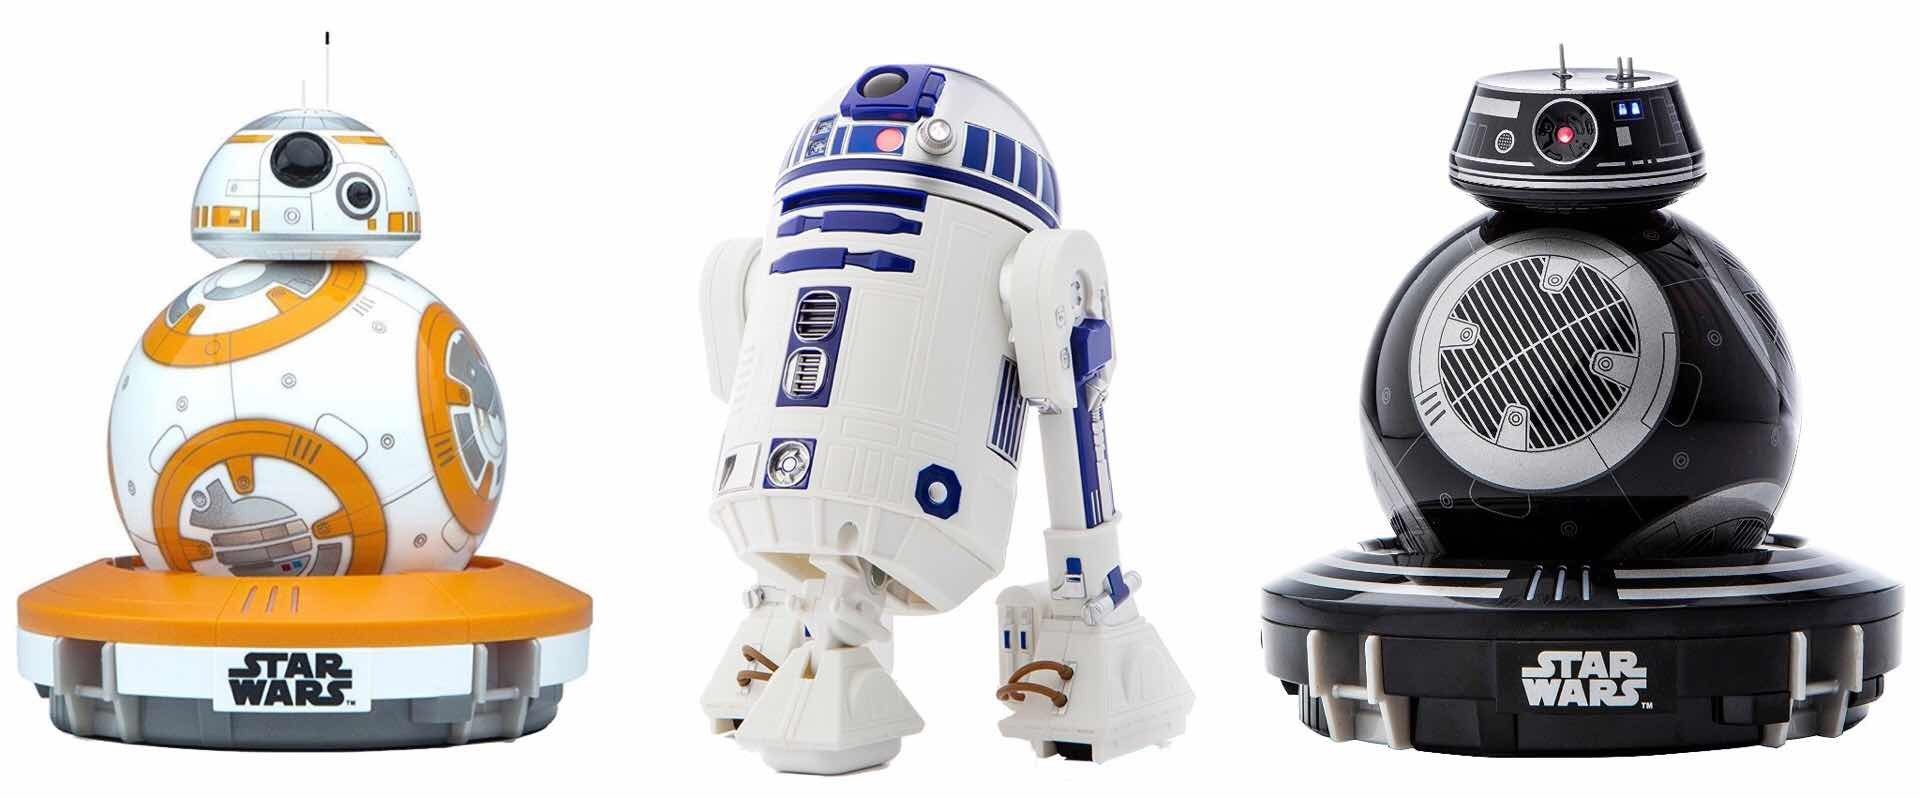 sphero-app-enabled-star-wars-droids-bb-8-r2-d2-bb-9e